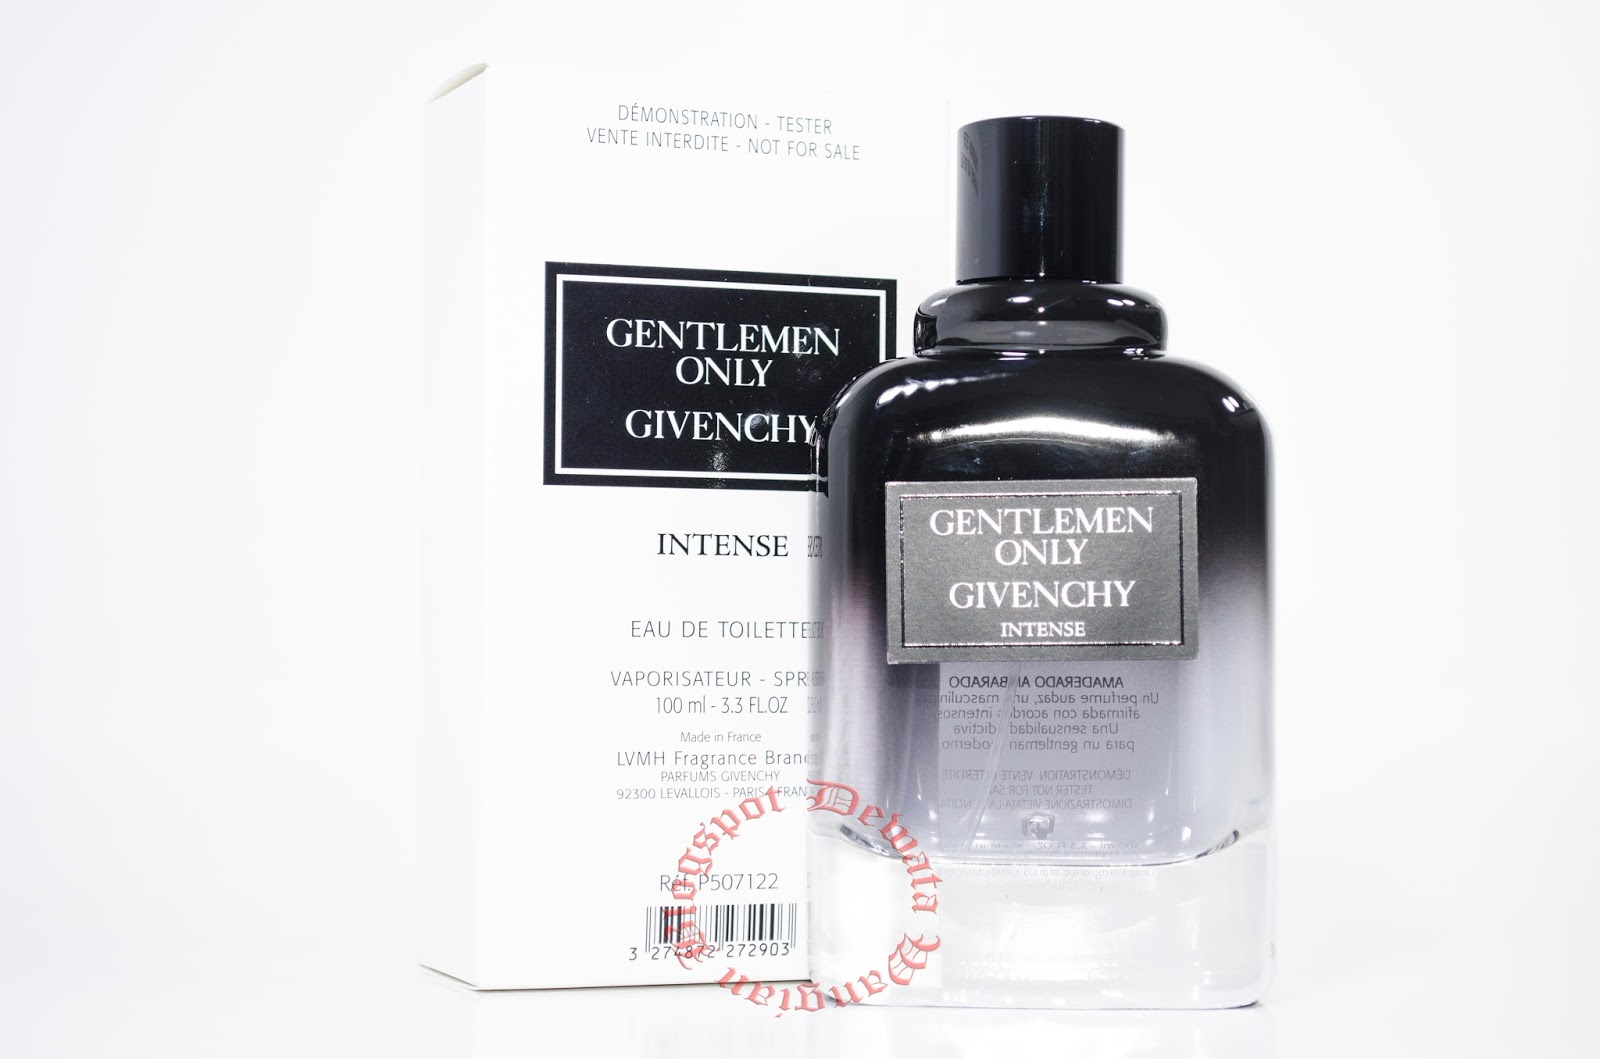 Givenchy Gentlemen Only Intense Tester Perfume Cosmetics Blogs